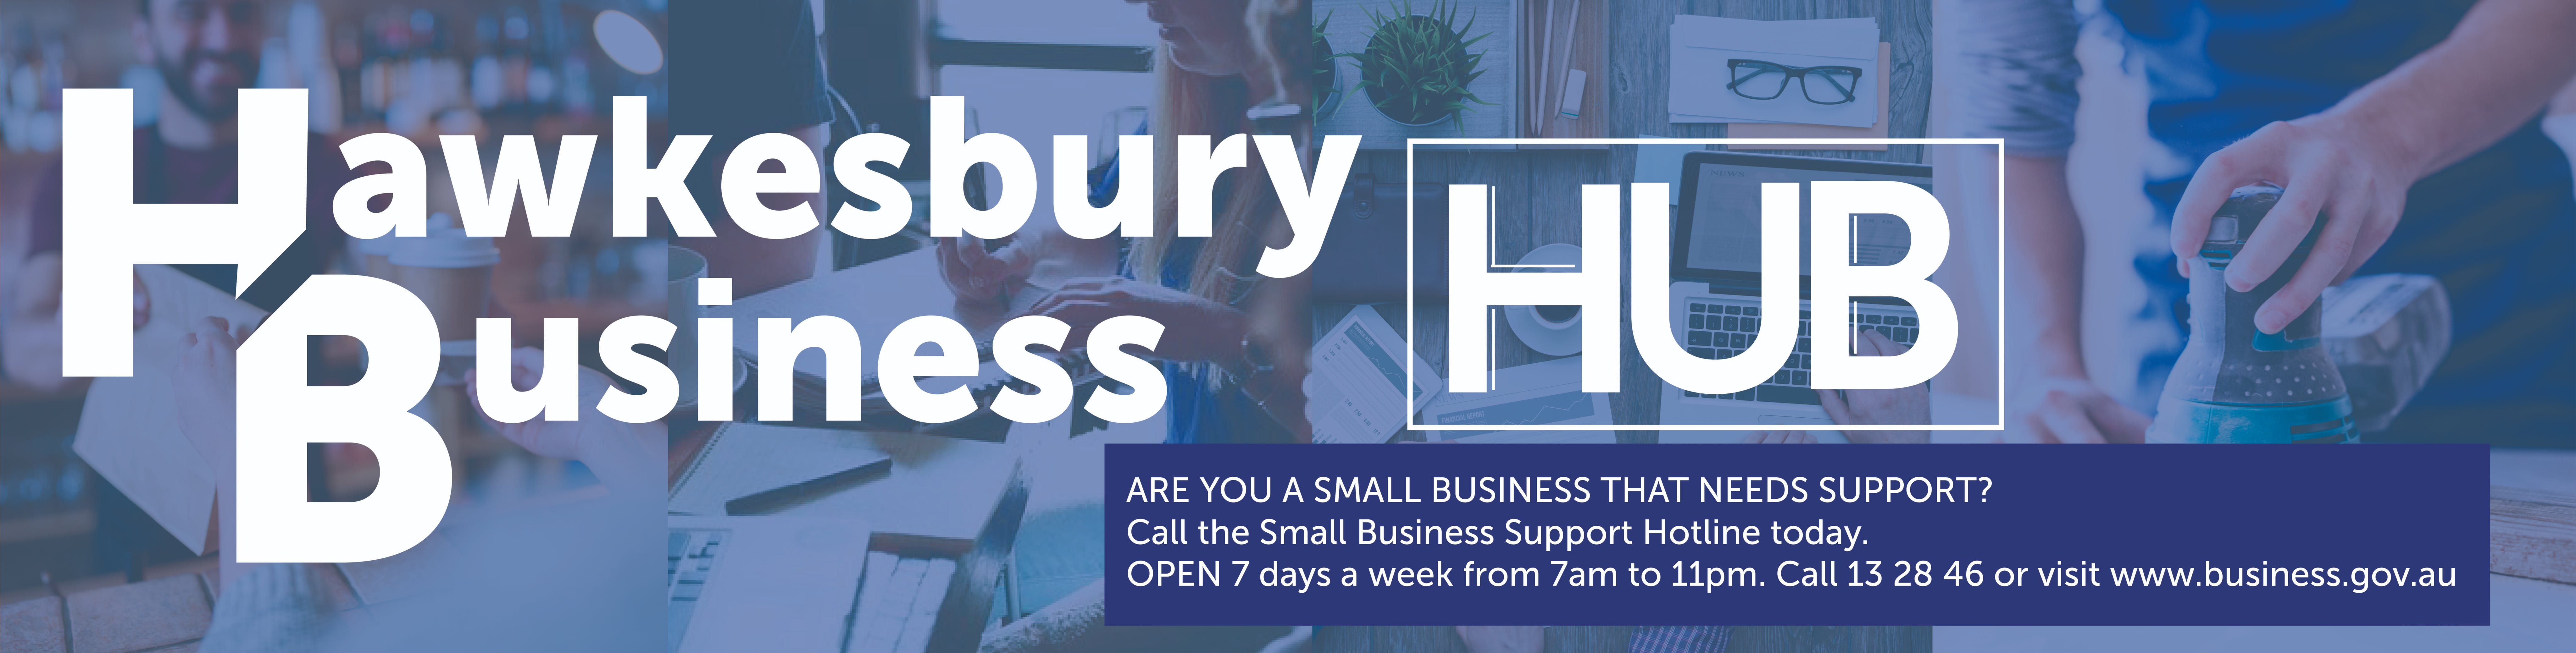 Welcome to the Hawkesbury Business Hub!